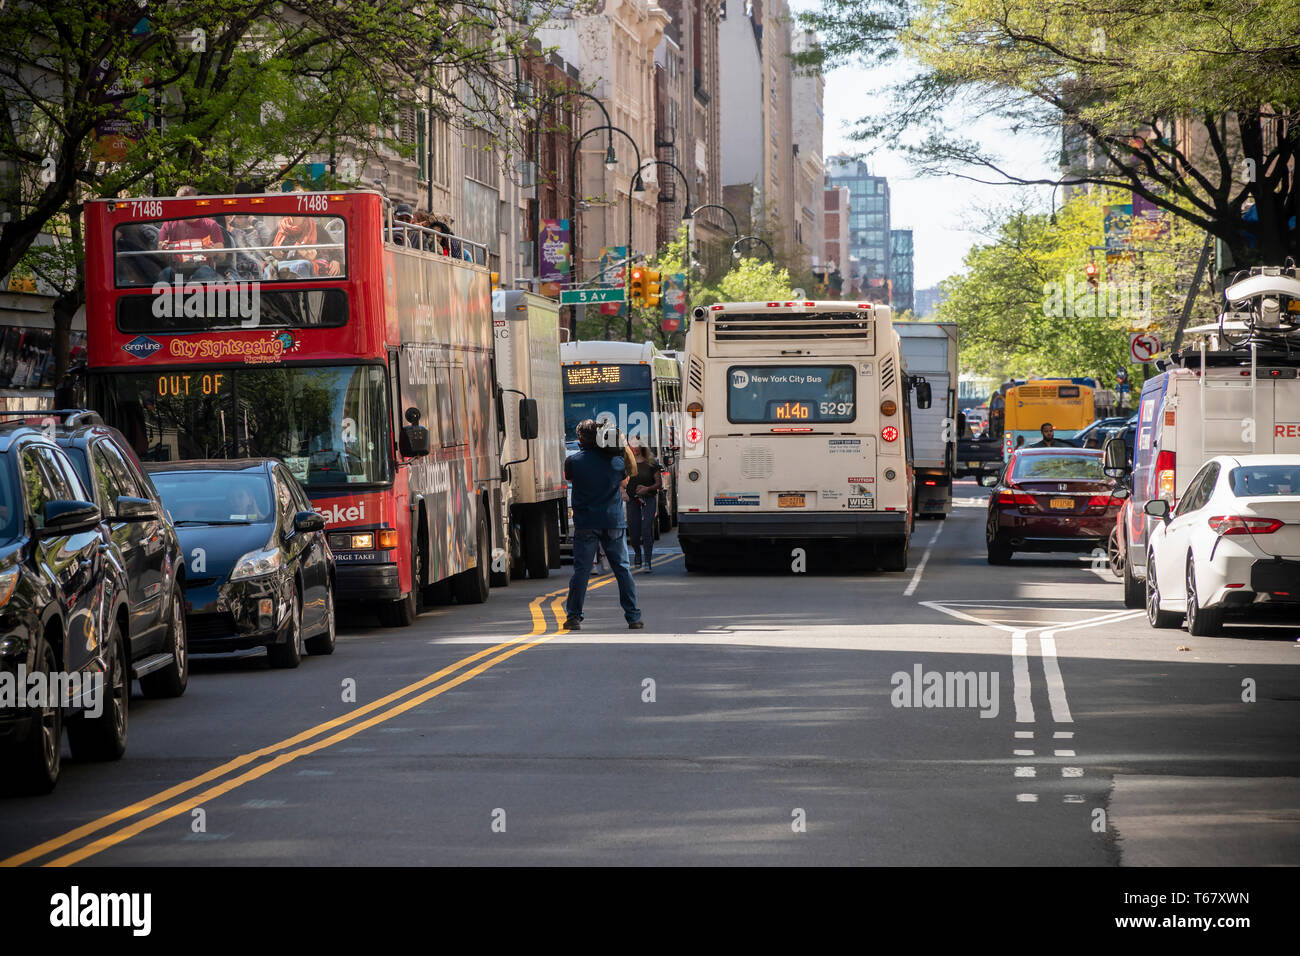 Traffic on 14th Street in New York on Wednesday, April 24